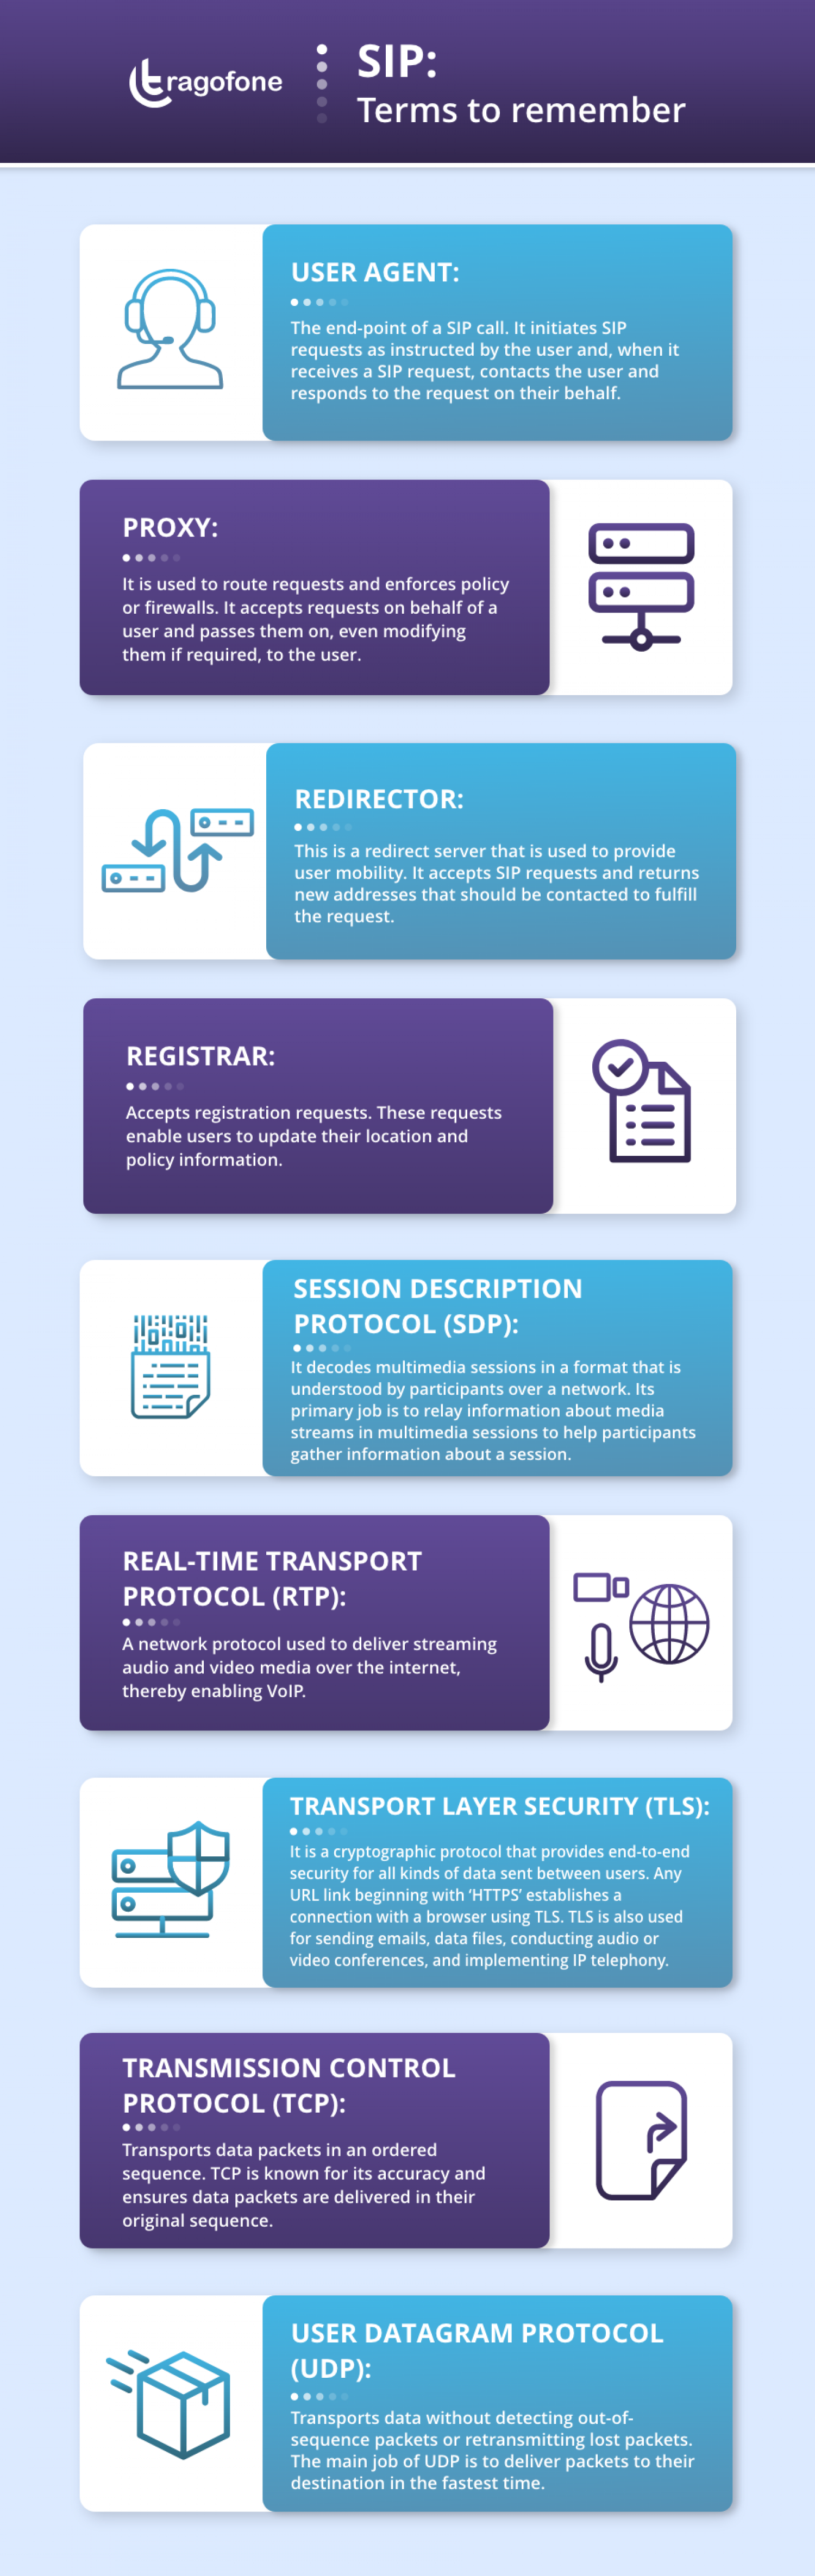 SIP: Terms to Remember Infographic